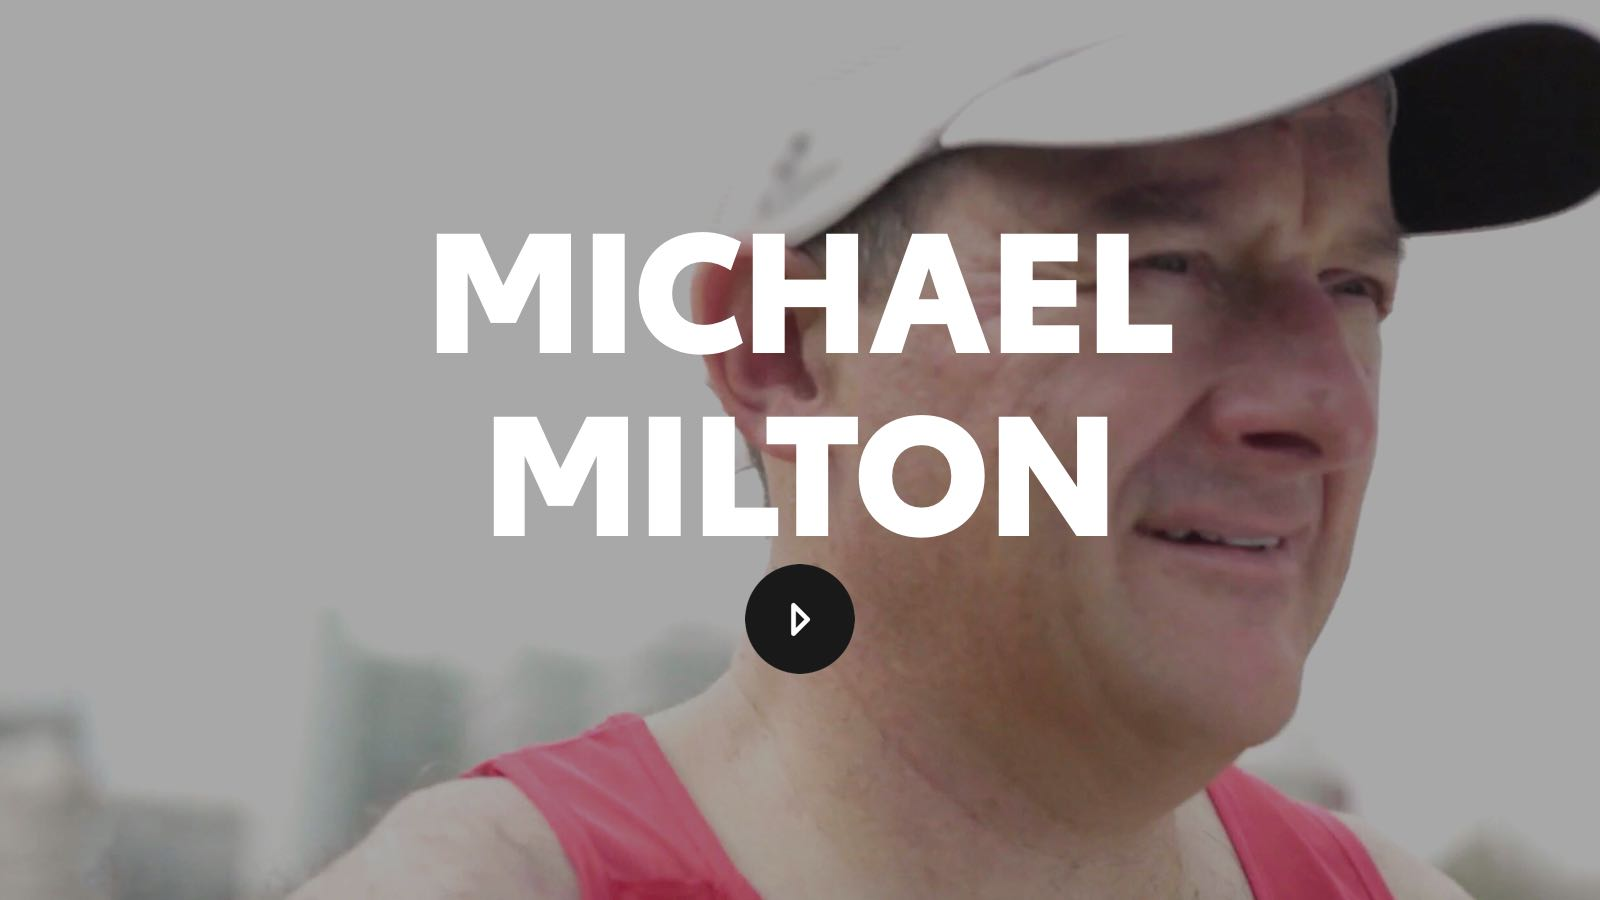 Michael Milton looks into the distance in a casual baseball hat and red tank top.